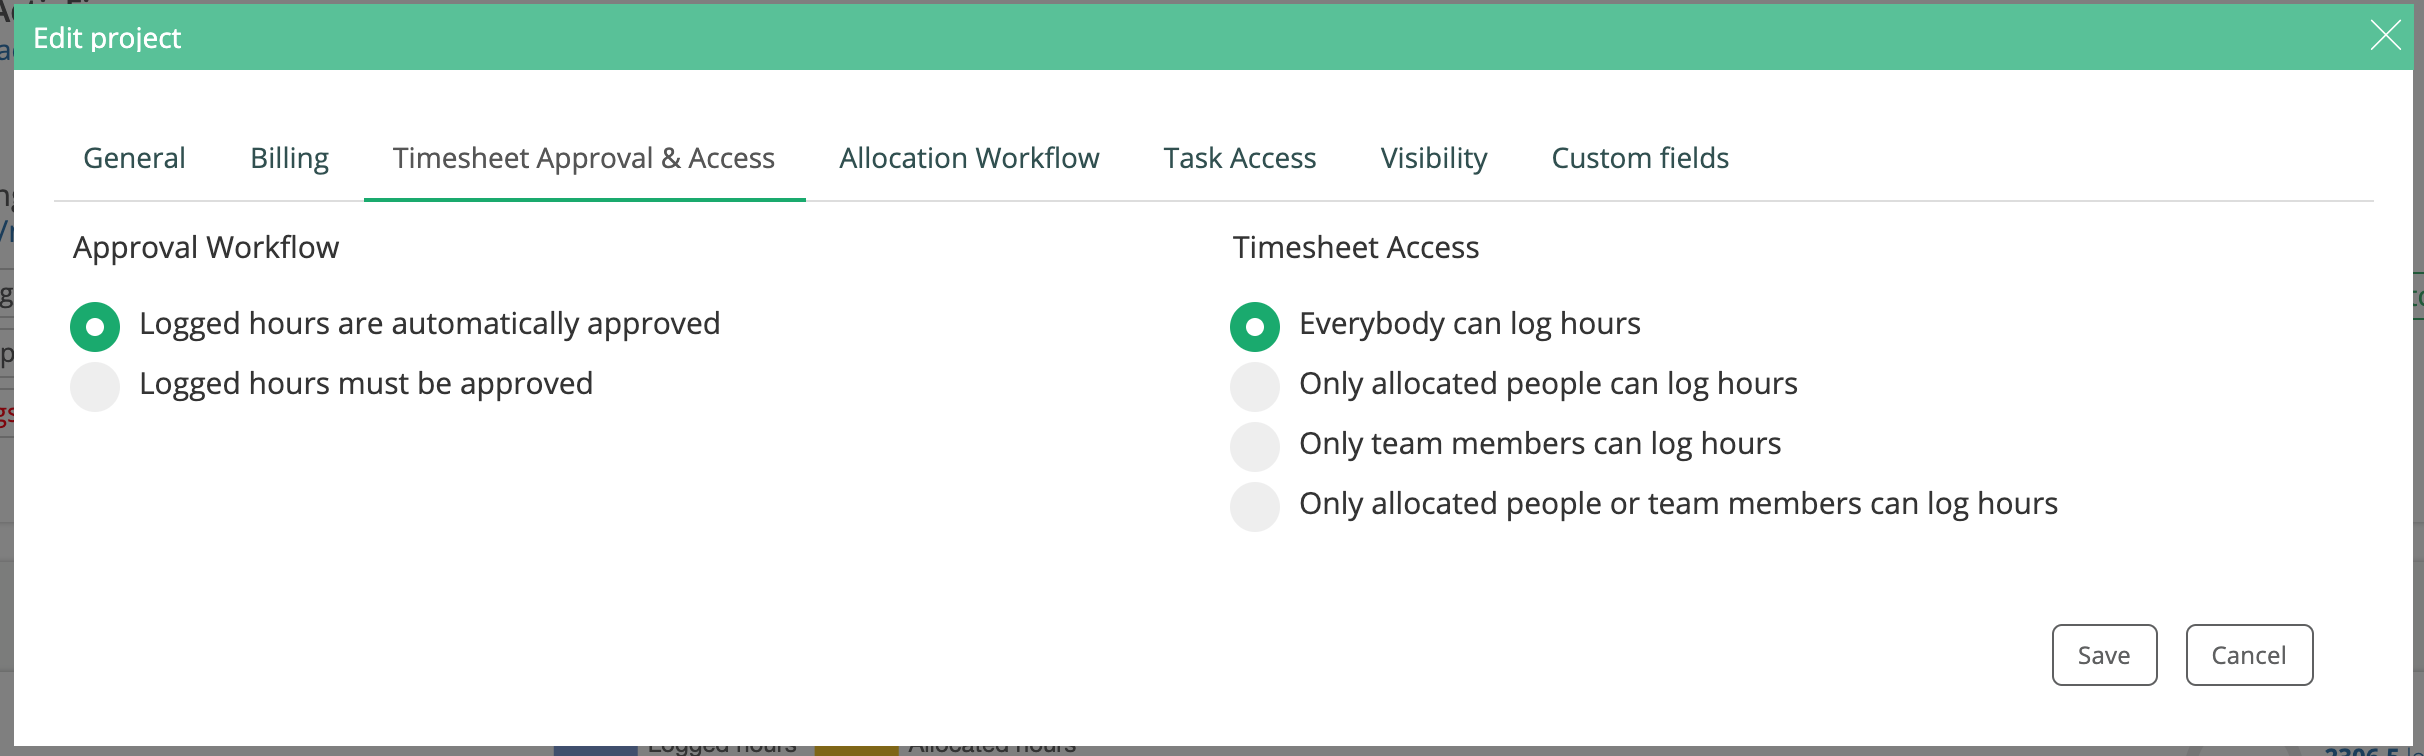 Timesheet approval and access